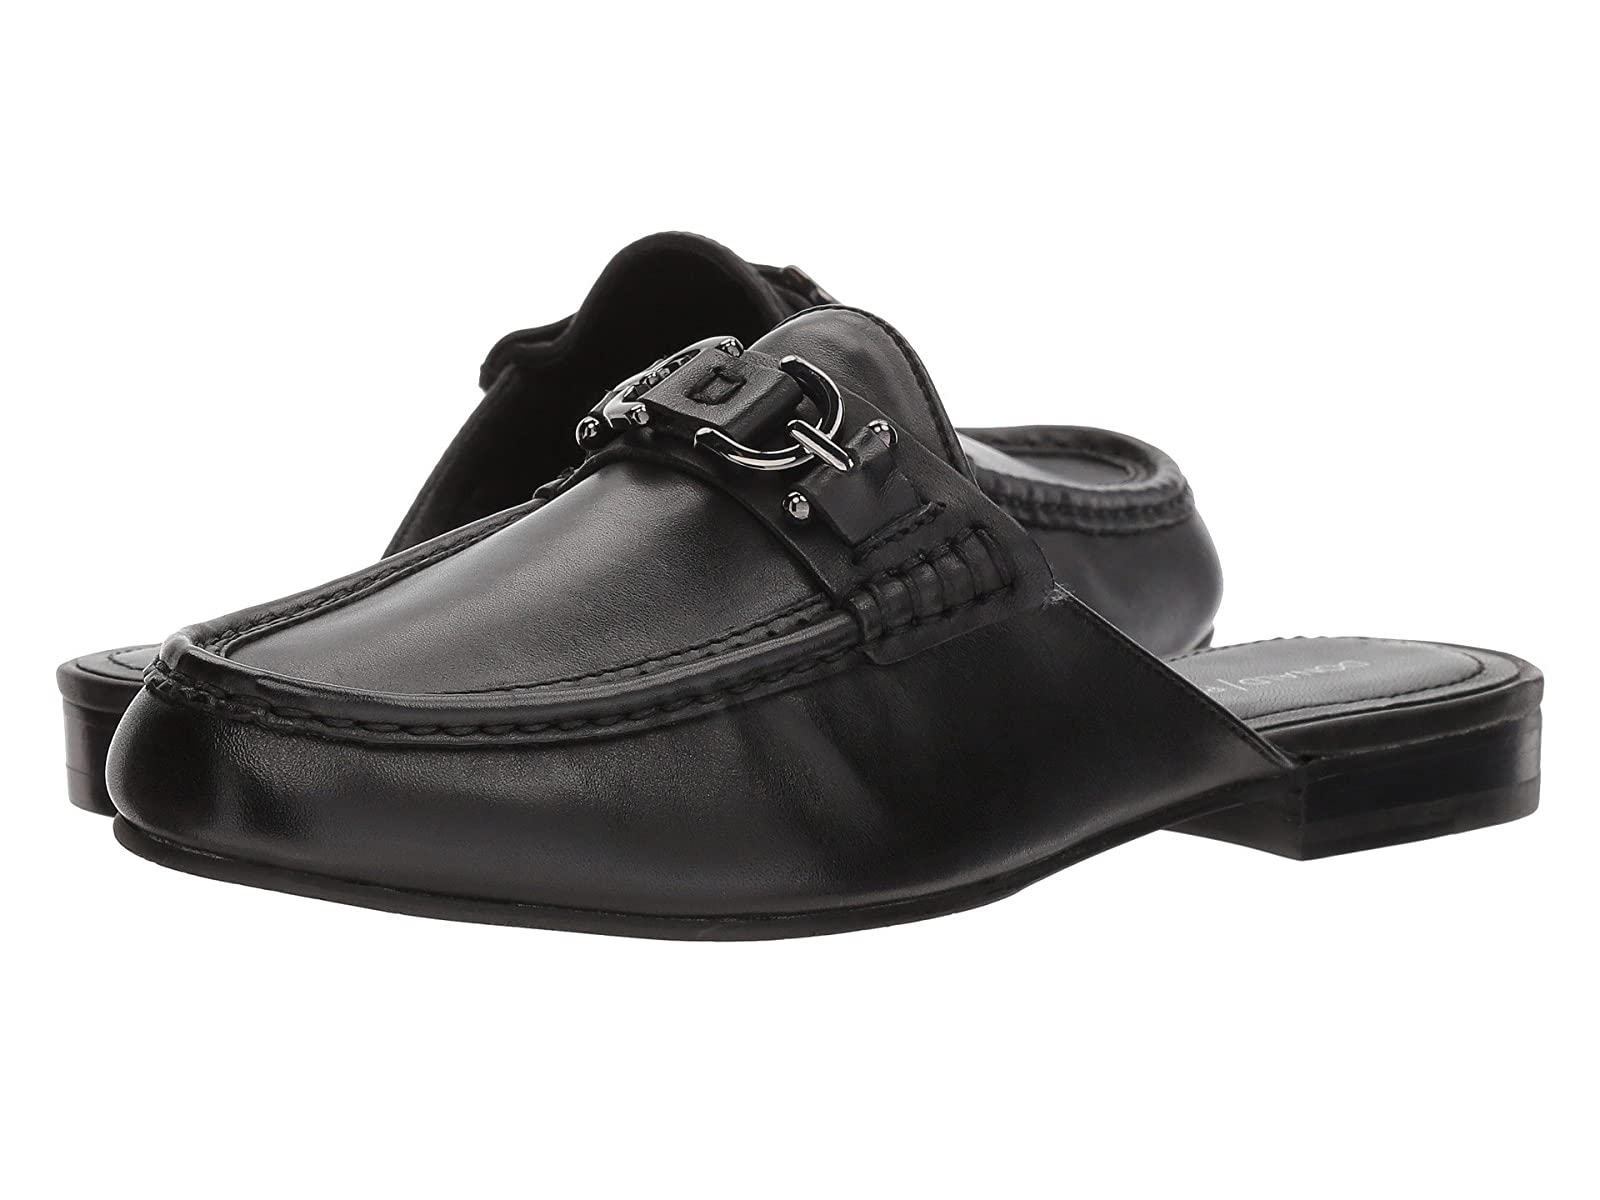 Donald J Pliner SylviCheap and distinctive eye-catching shoes